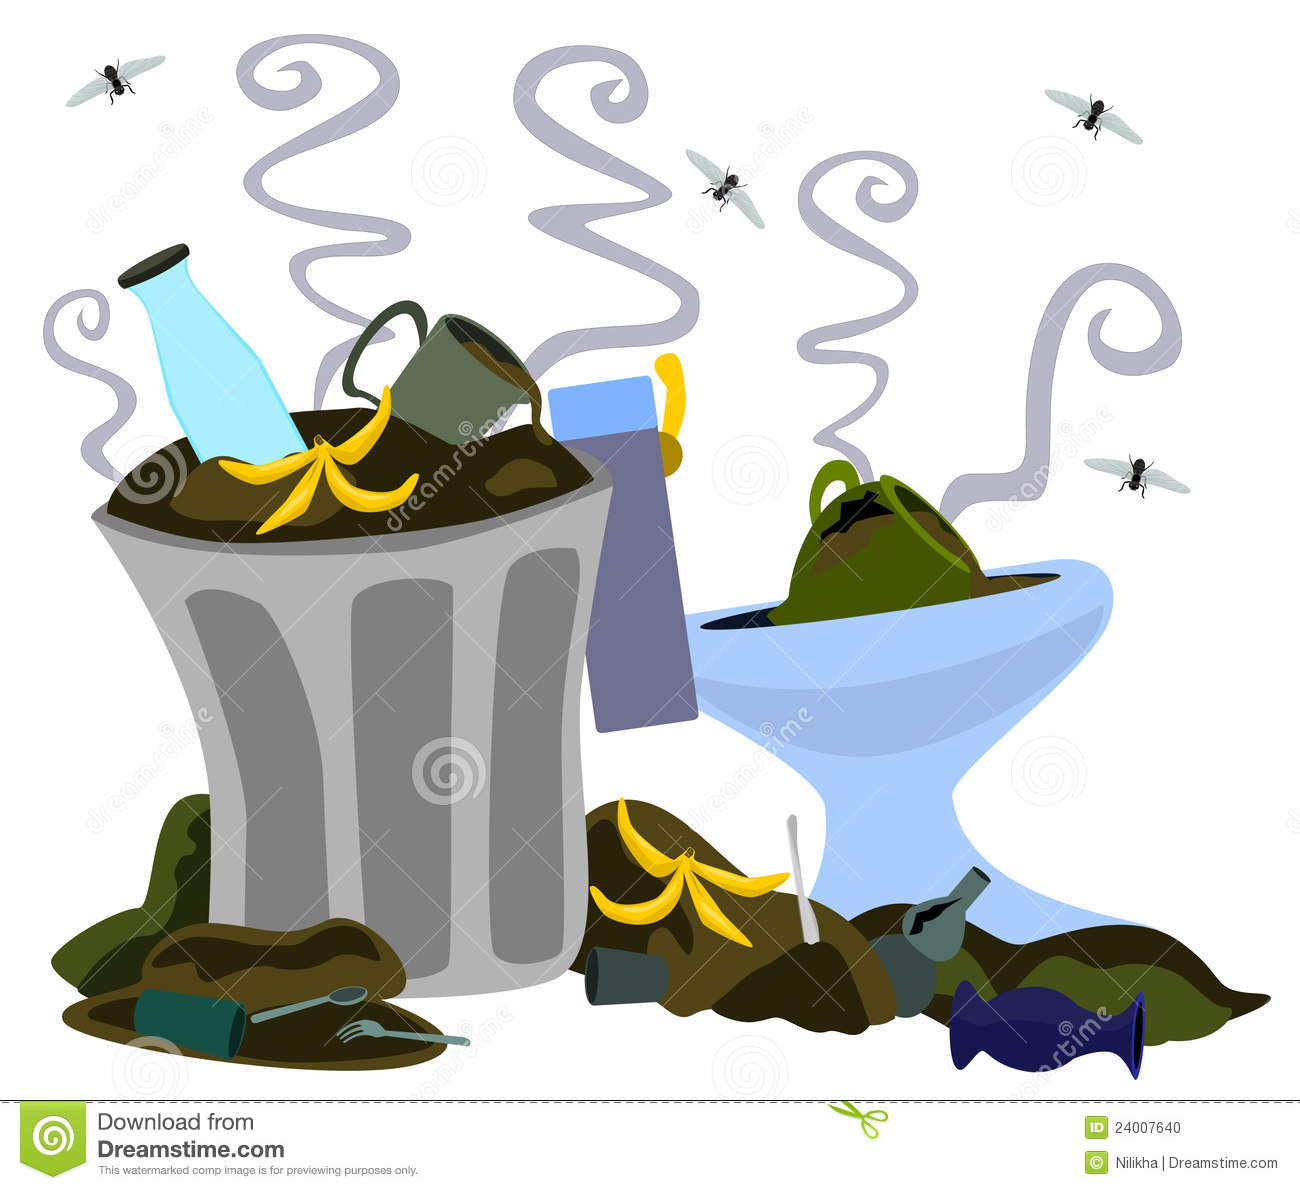 Garbage Dump Clipart - Clipart Suggest